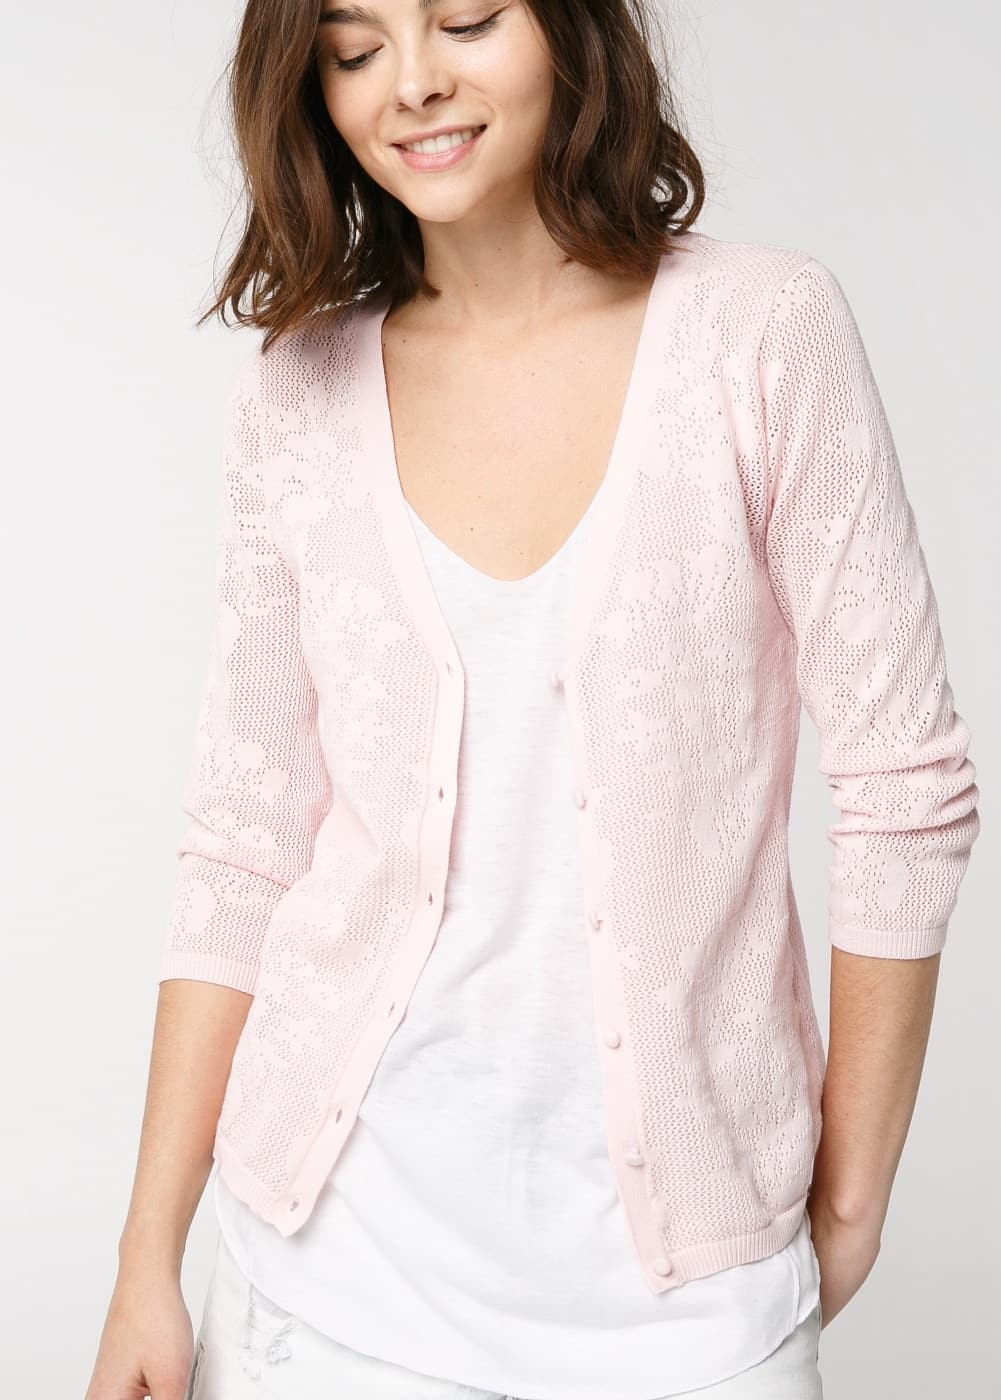 Flower-patterned openwork cardigan